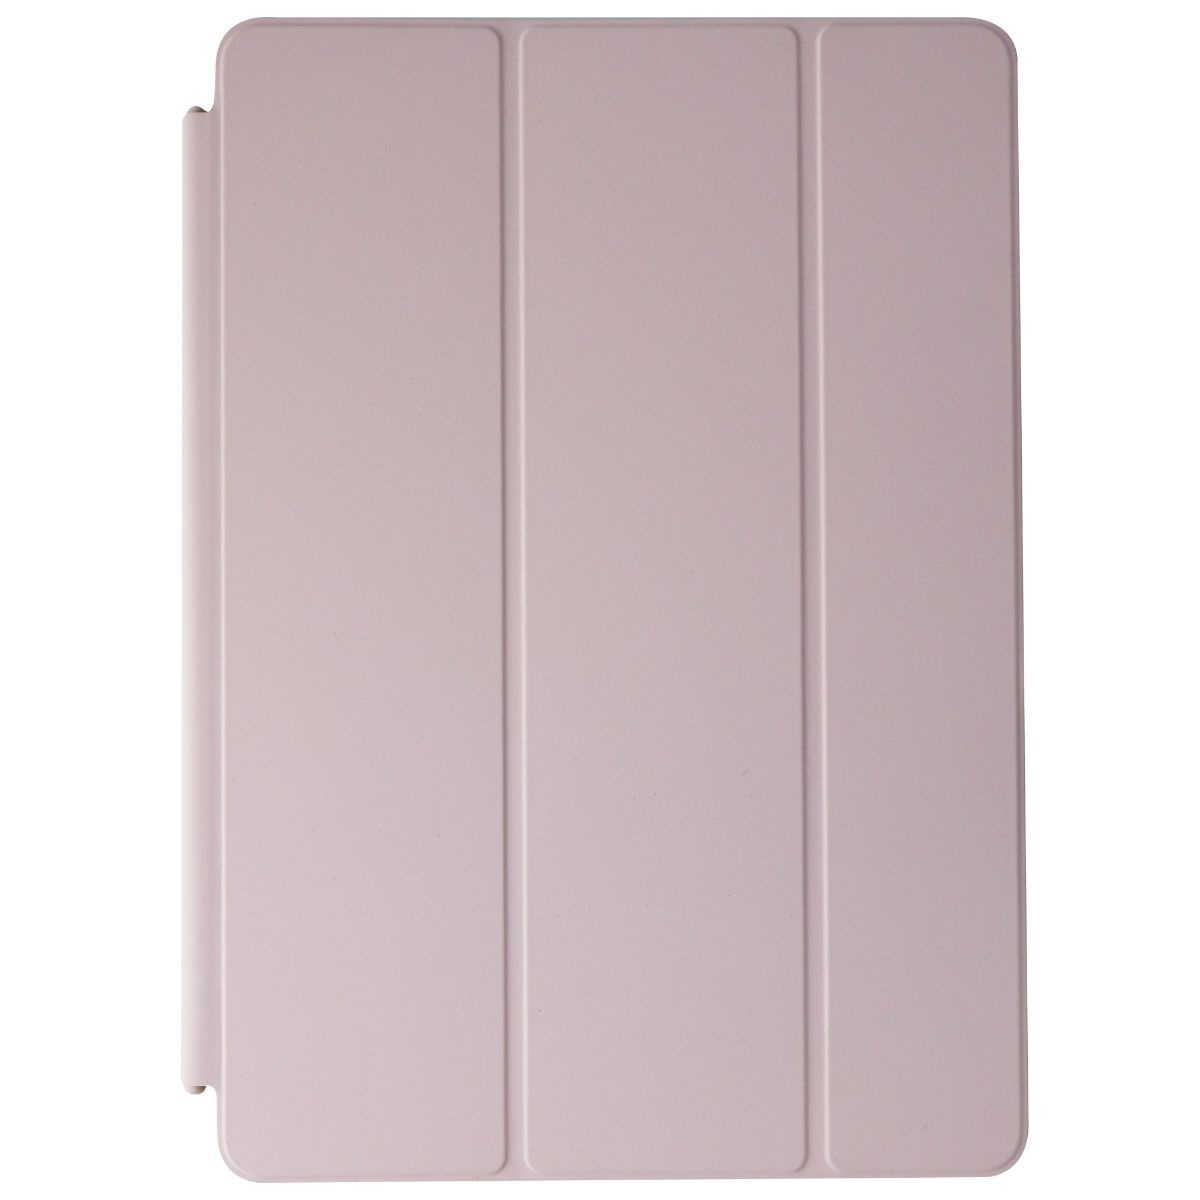 Apple Smart Cover for iPad Air 10.5-inch - Pink Sand